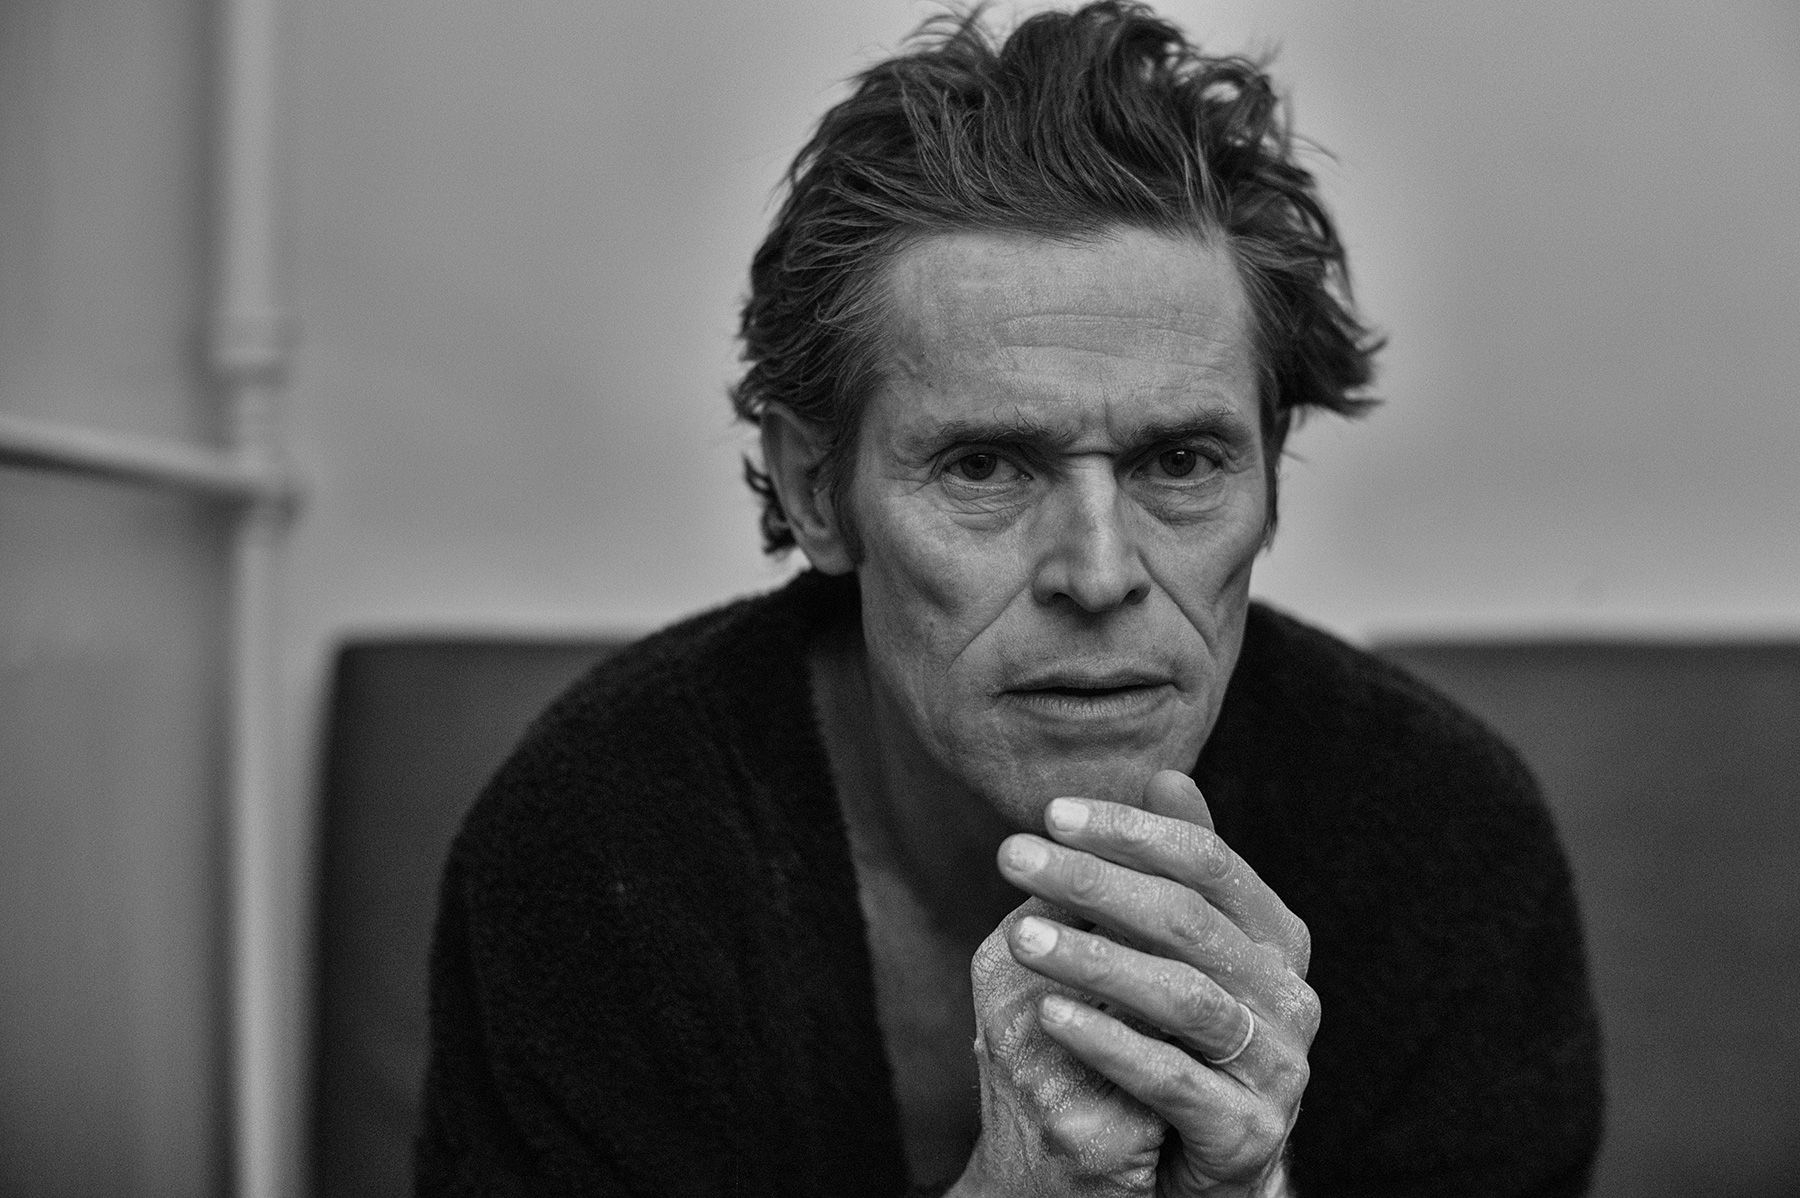 Download 1800x1198 Willem Dafoe, Actor, Black And White, Face